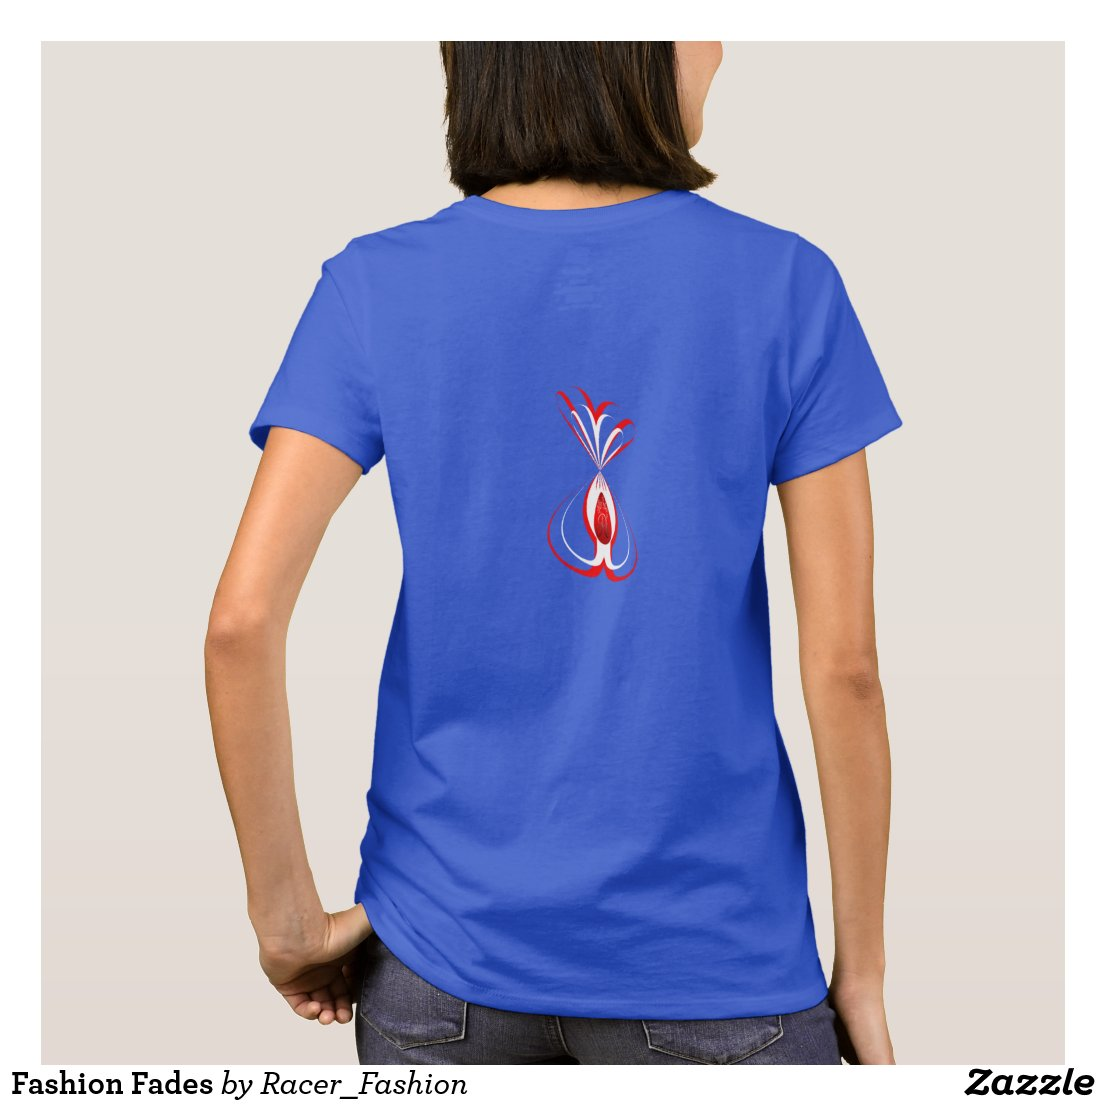 Fashion Fades T-Shirt